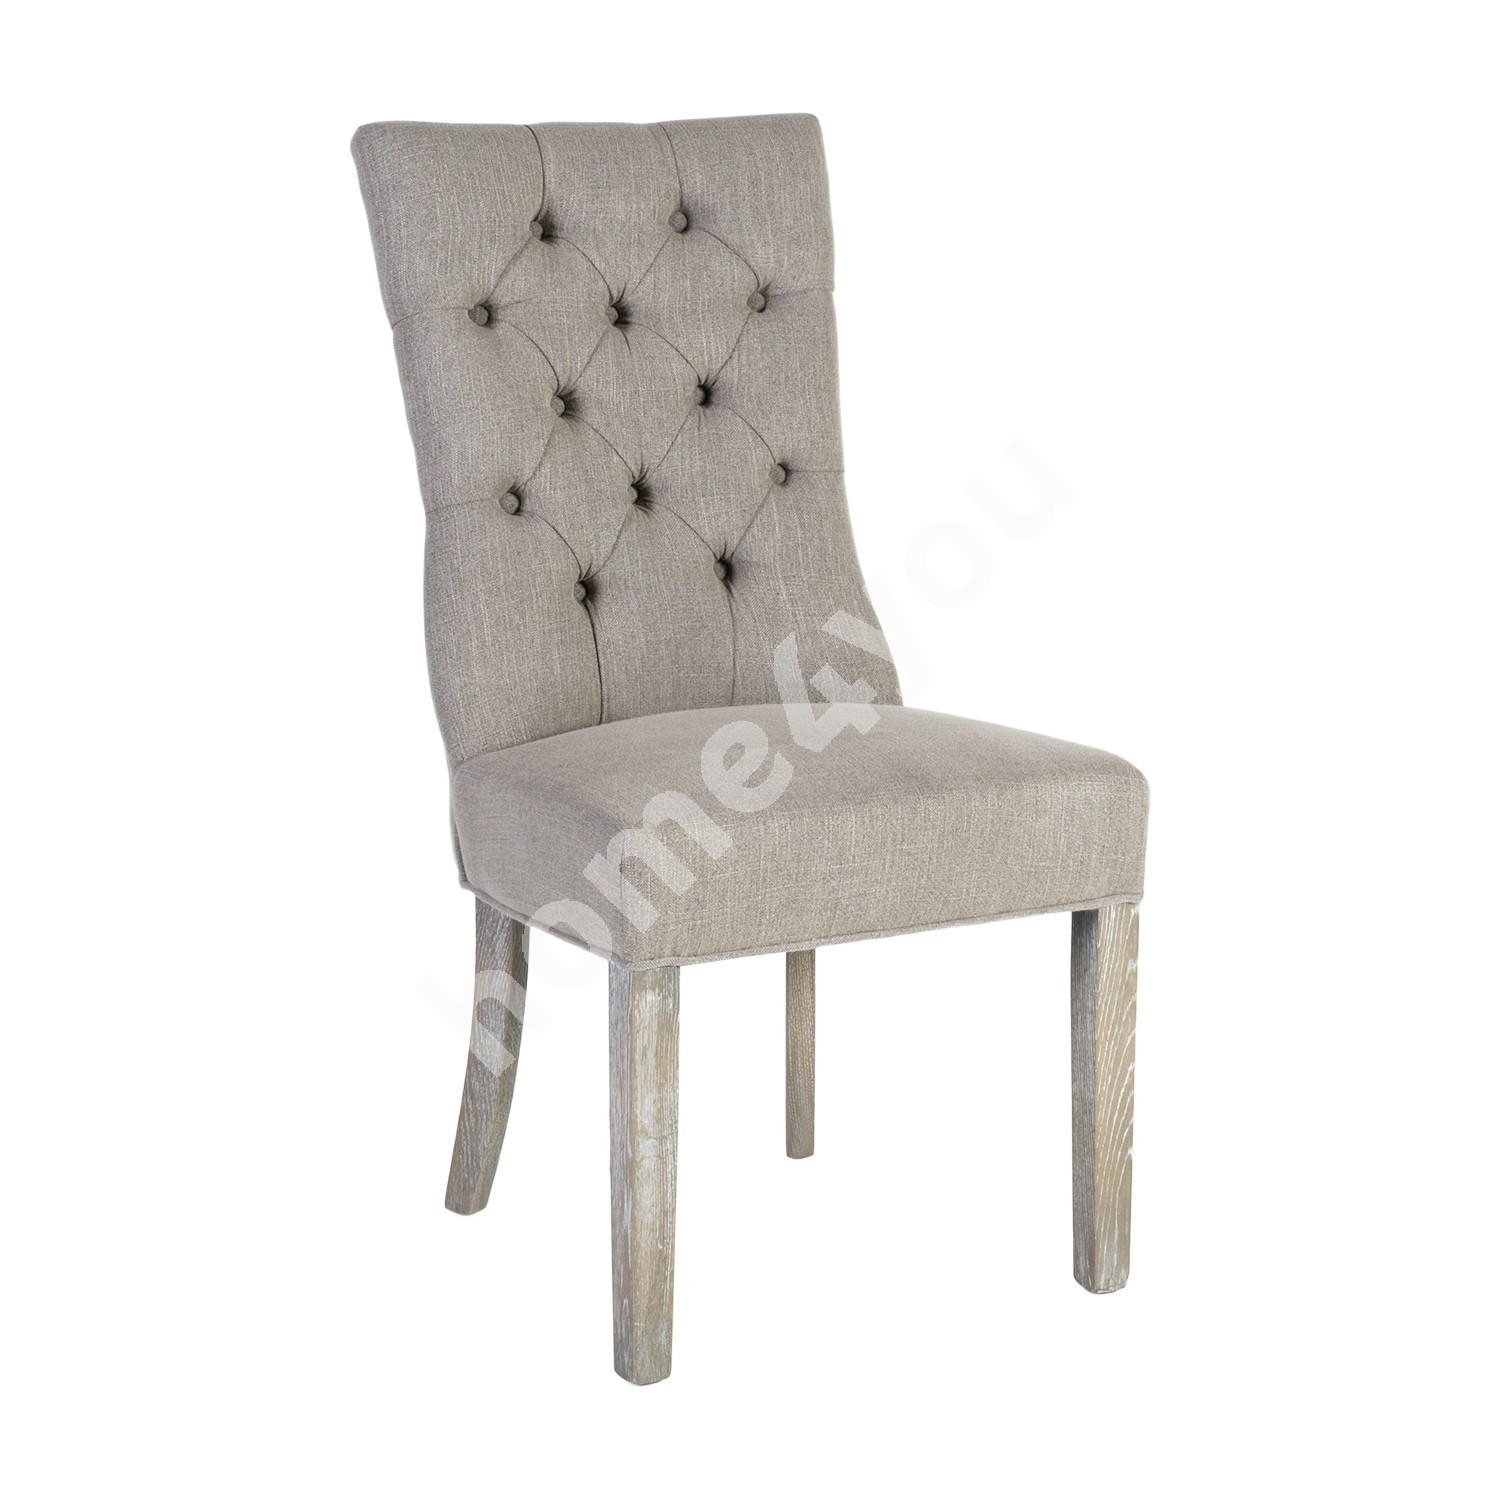 Chair WATSON 52x57xH102cm, cover material: fabric, color: greyish beige, oak legs